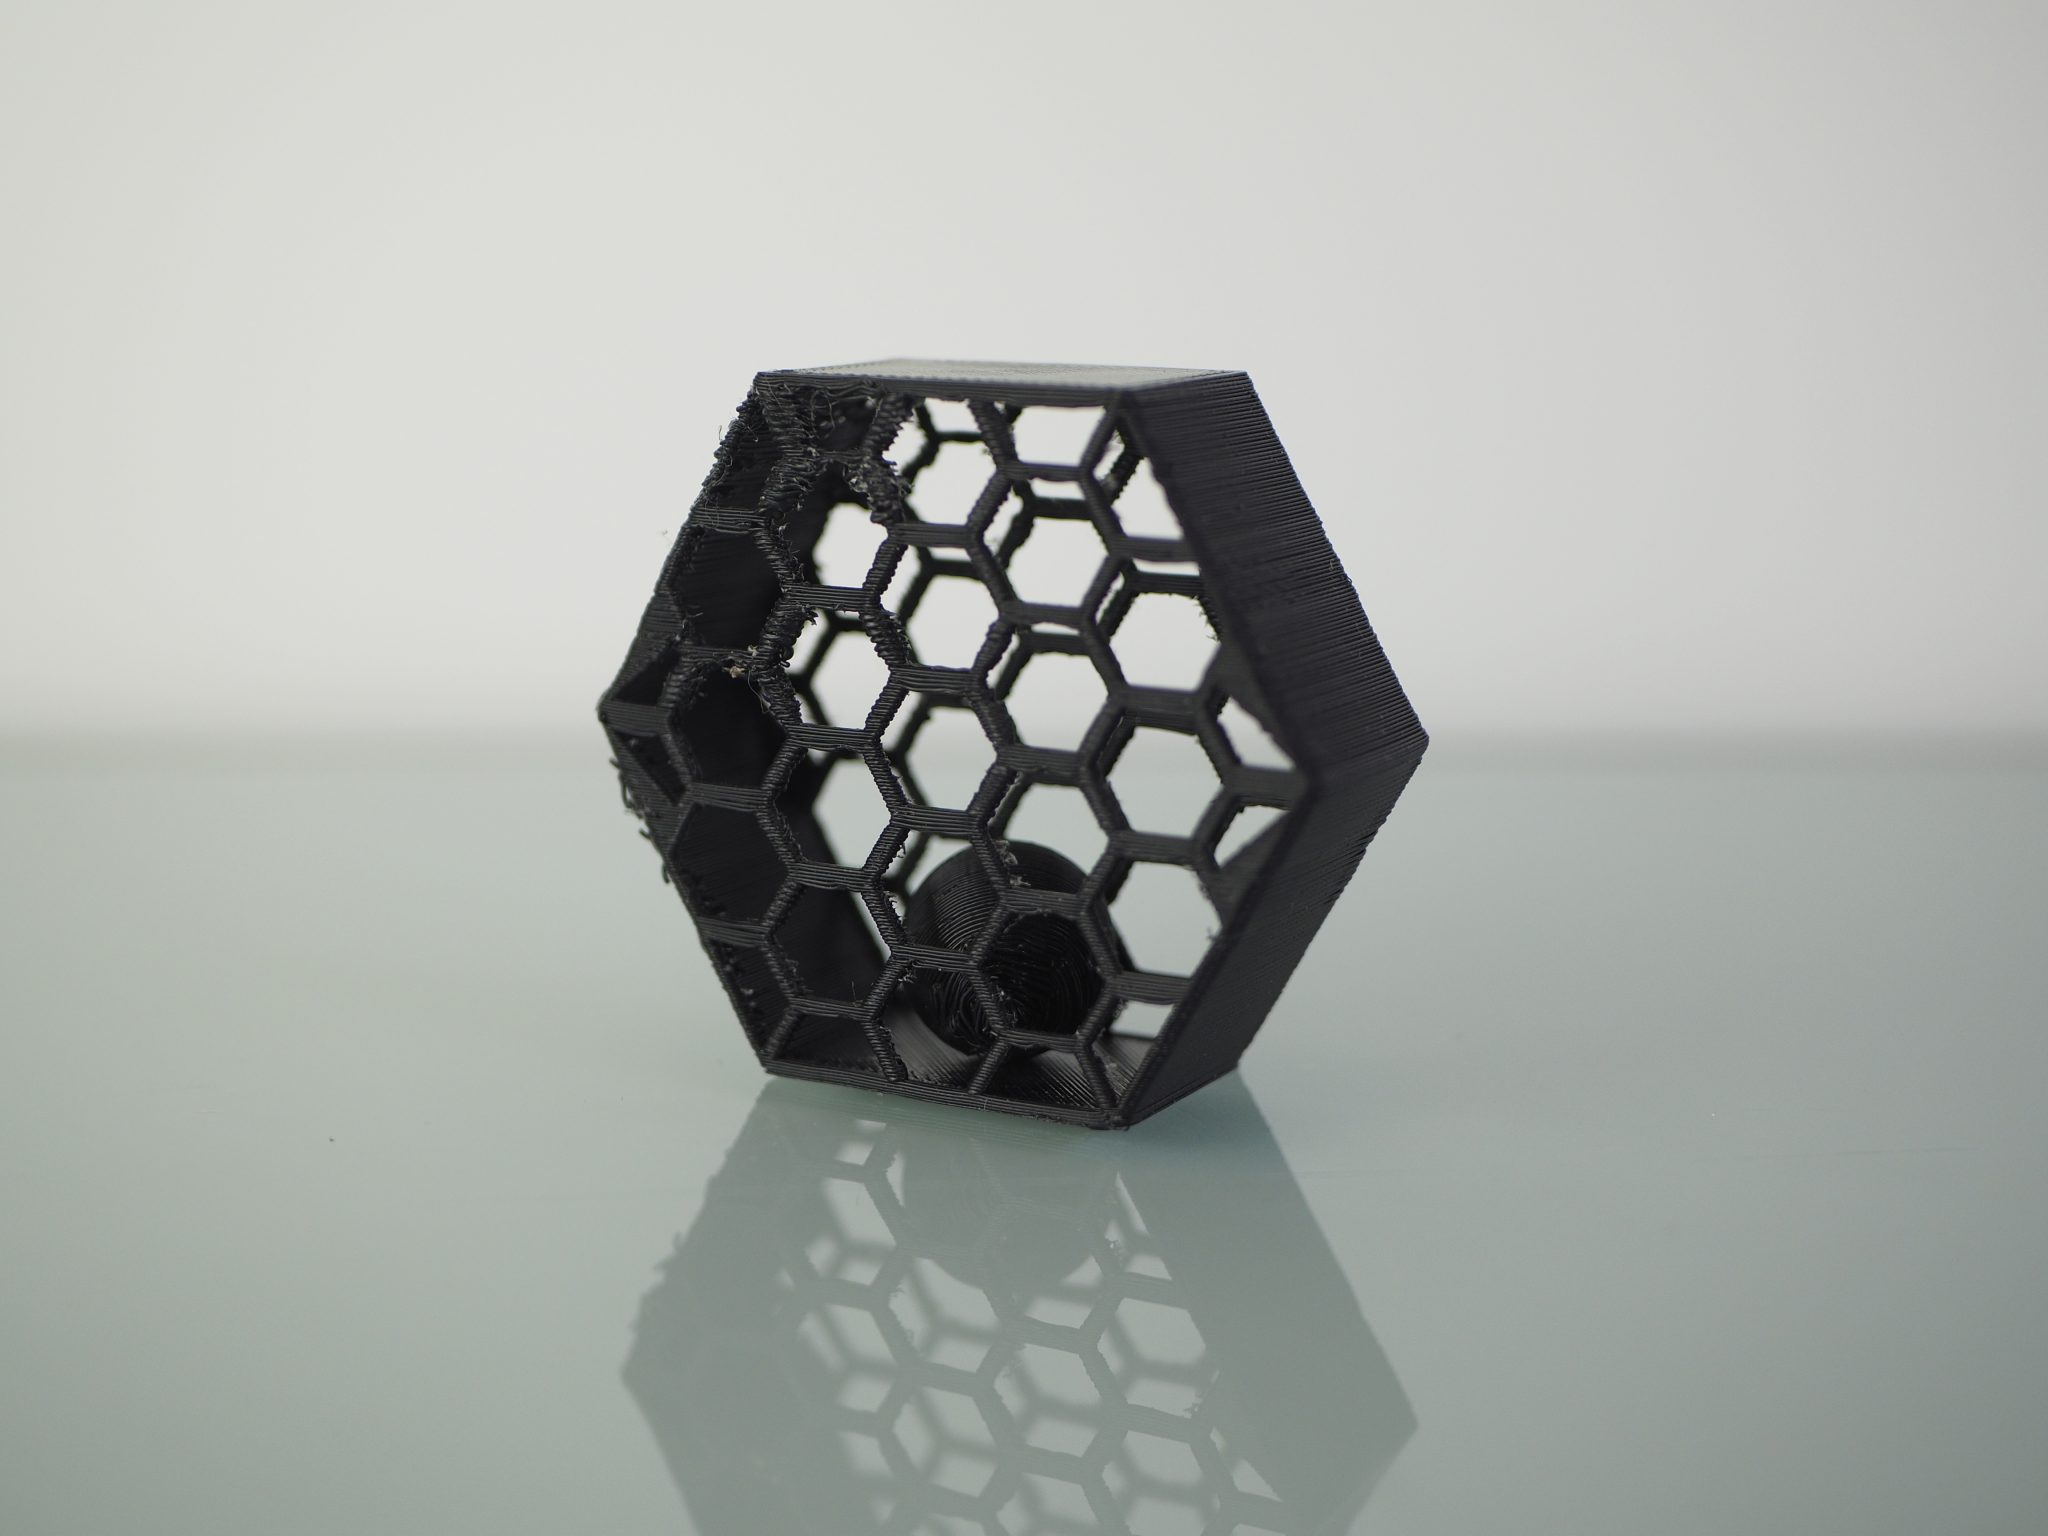 Dual extrusion 'ball in a cage' test. Photo by 3D Printing Industry.